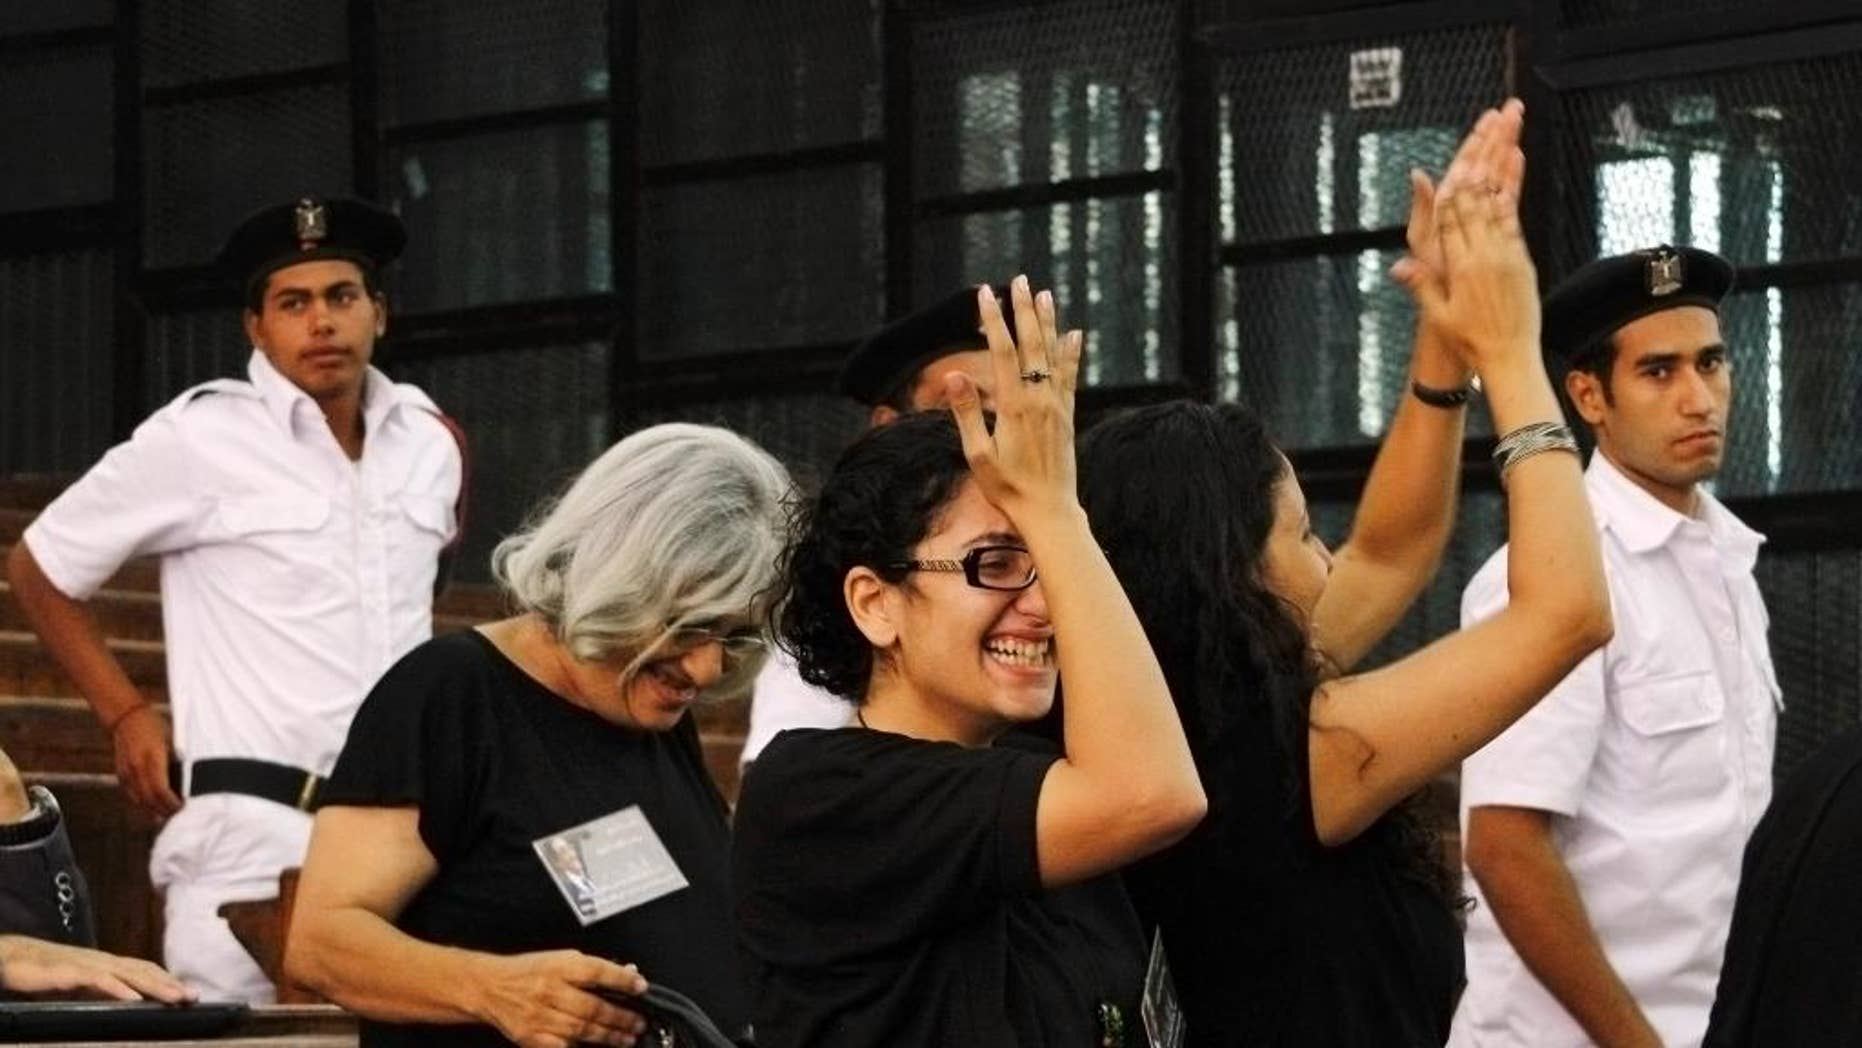 Prominent Egyptian blogger Alaa Abdel-Fattah's mother, Laila Soueif, a university professor who is an also an activist, background left, his sister Mona Seif, wearing eyeglasses at center, and his wife, ManalBahy Eddin Hassan at right, cheer after his release on bail at a courtroom in Cairo, Egypt, Monday, Sept. 15, 2014. Relatives say that Egypt's most prominent activist who is standing retrial after being sentenced to 15 years in prison for violating to the country's draconian protest law, has been released on bail. (AP Photo/Ravy Shaker, El Shorouk) EGYPT OUT